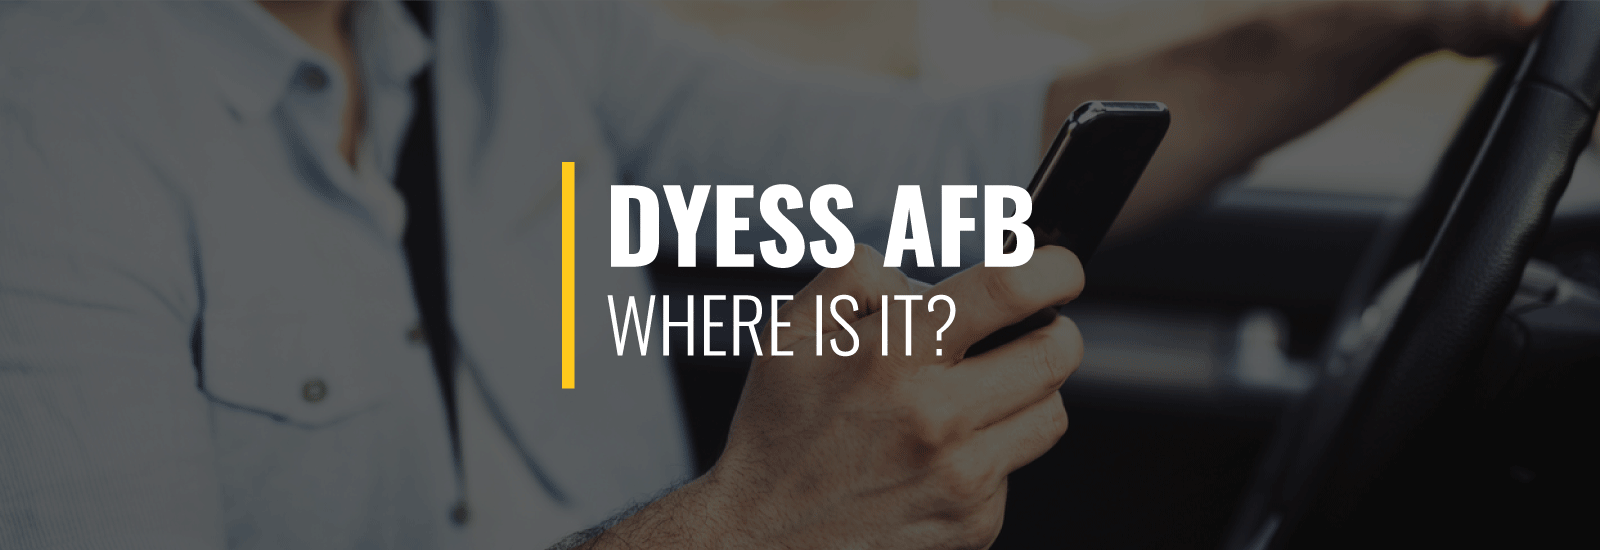 Where Is Dyess AFB?